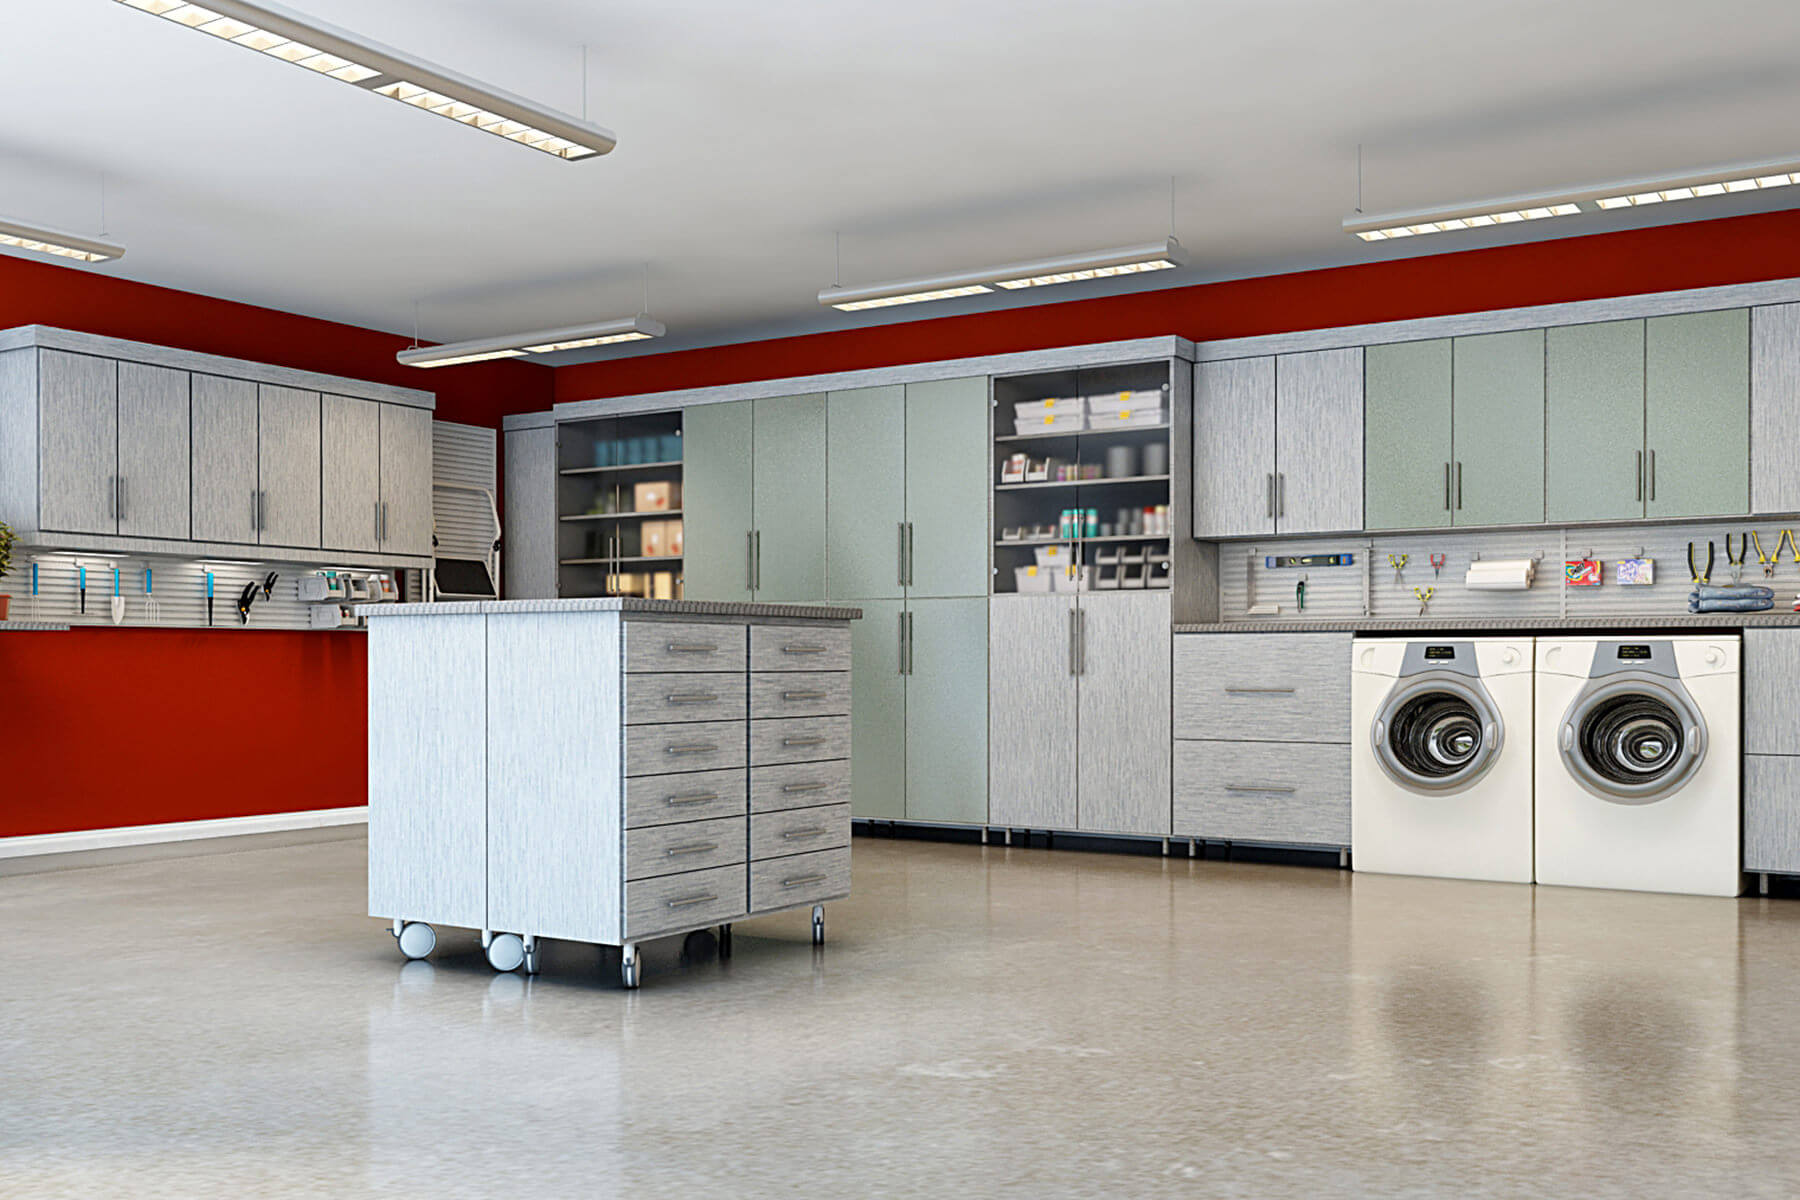 This garage features a movable melamine smoke island that enables you to move it around as you work.